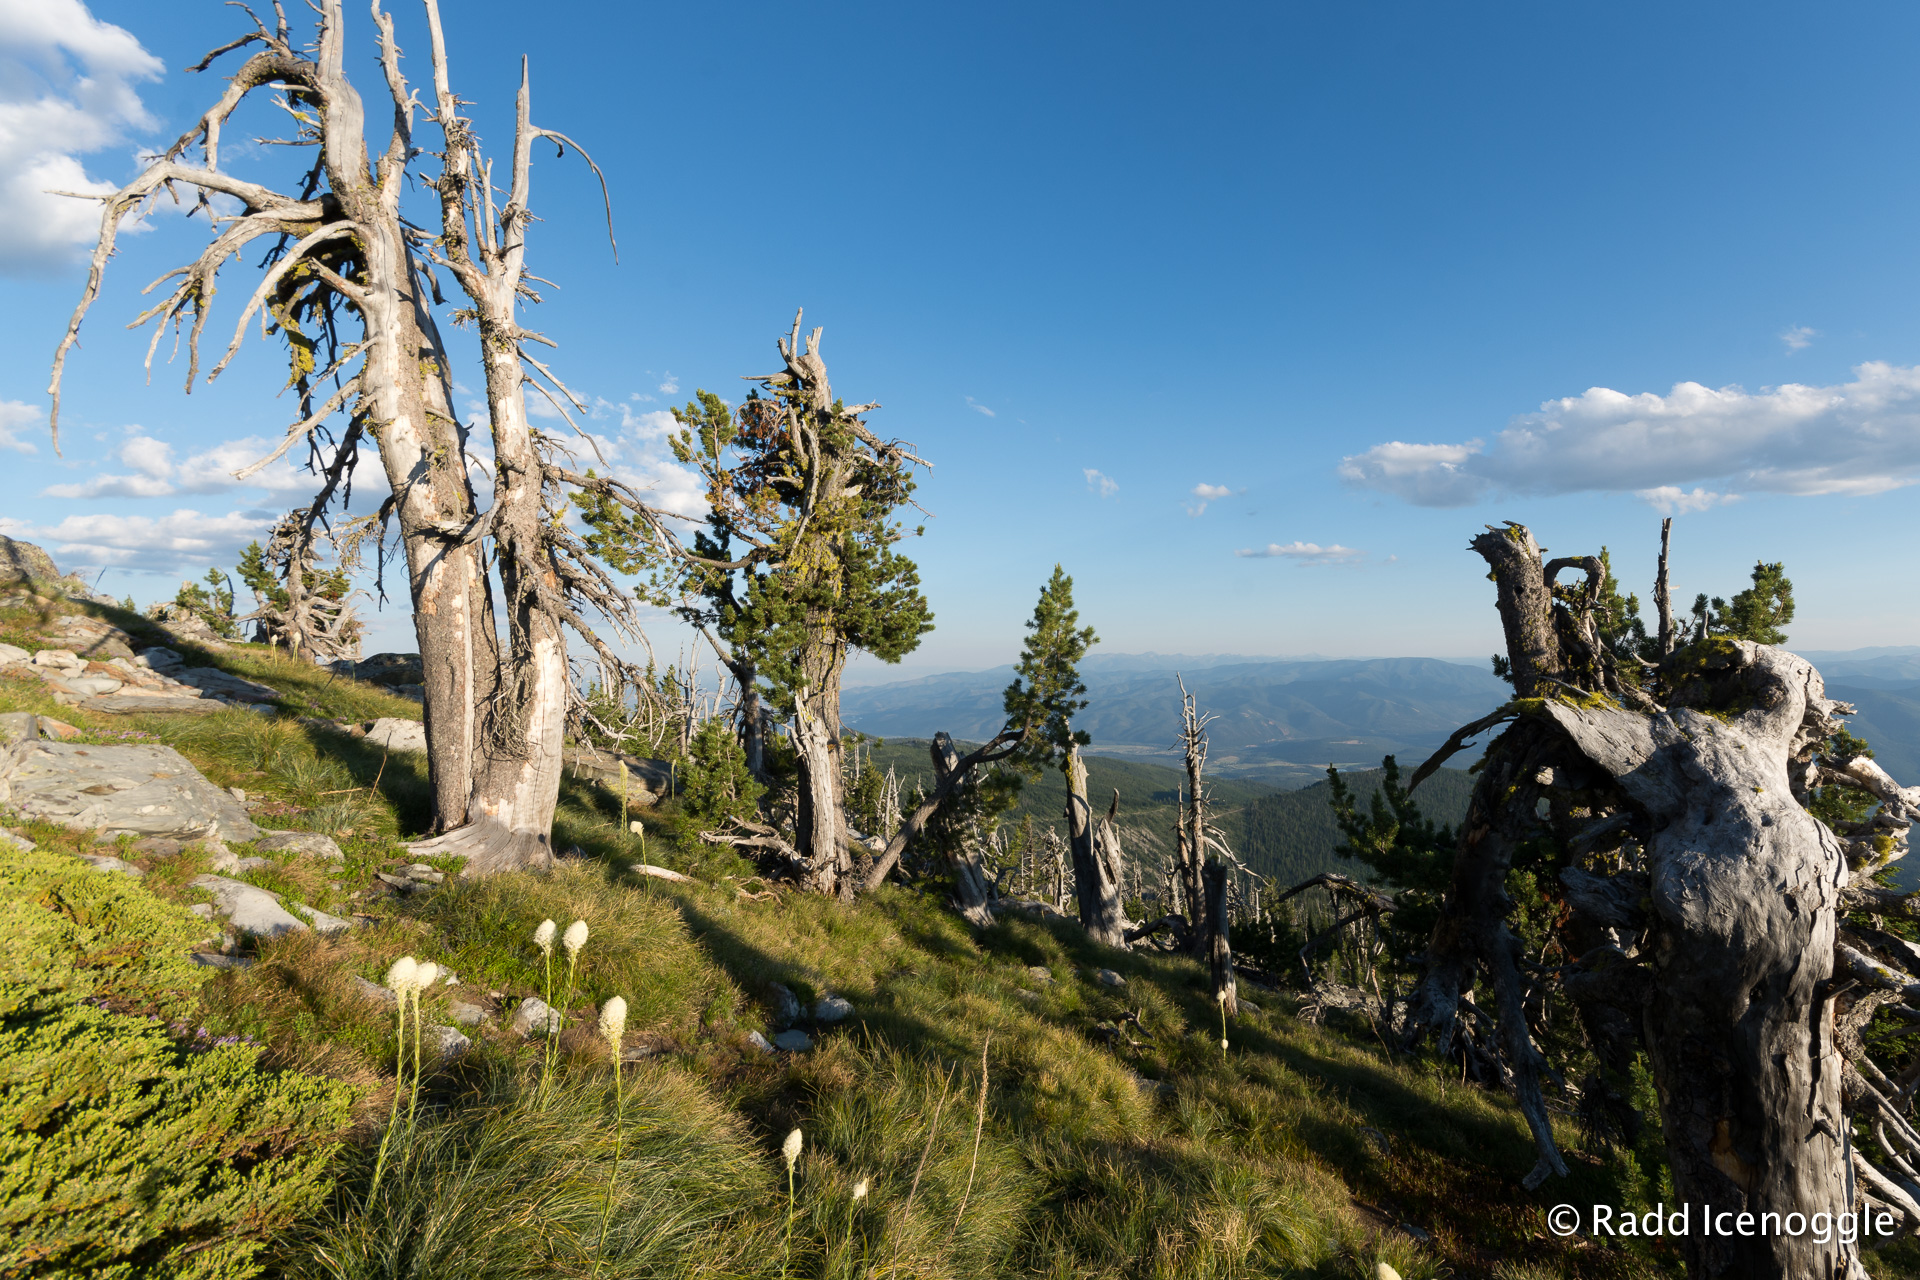 Whitebark pine in various states of living and dying